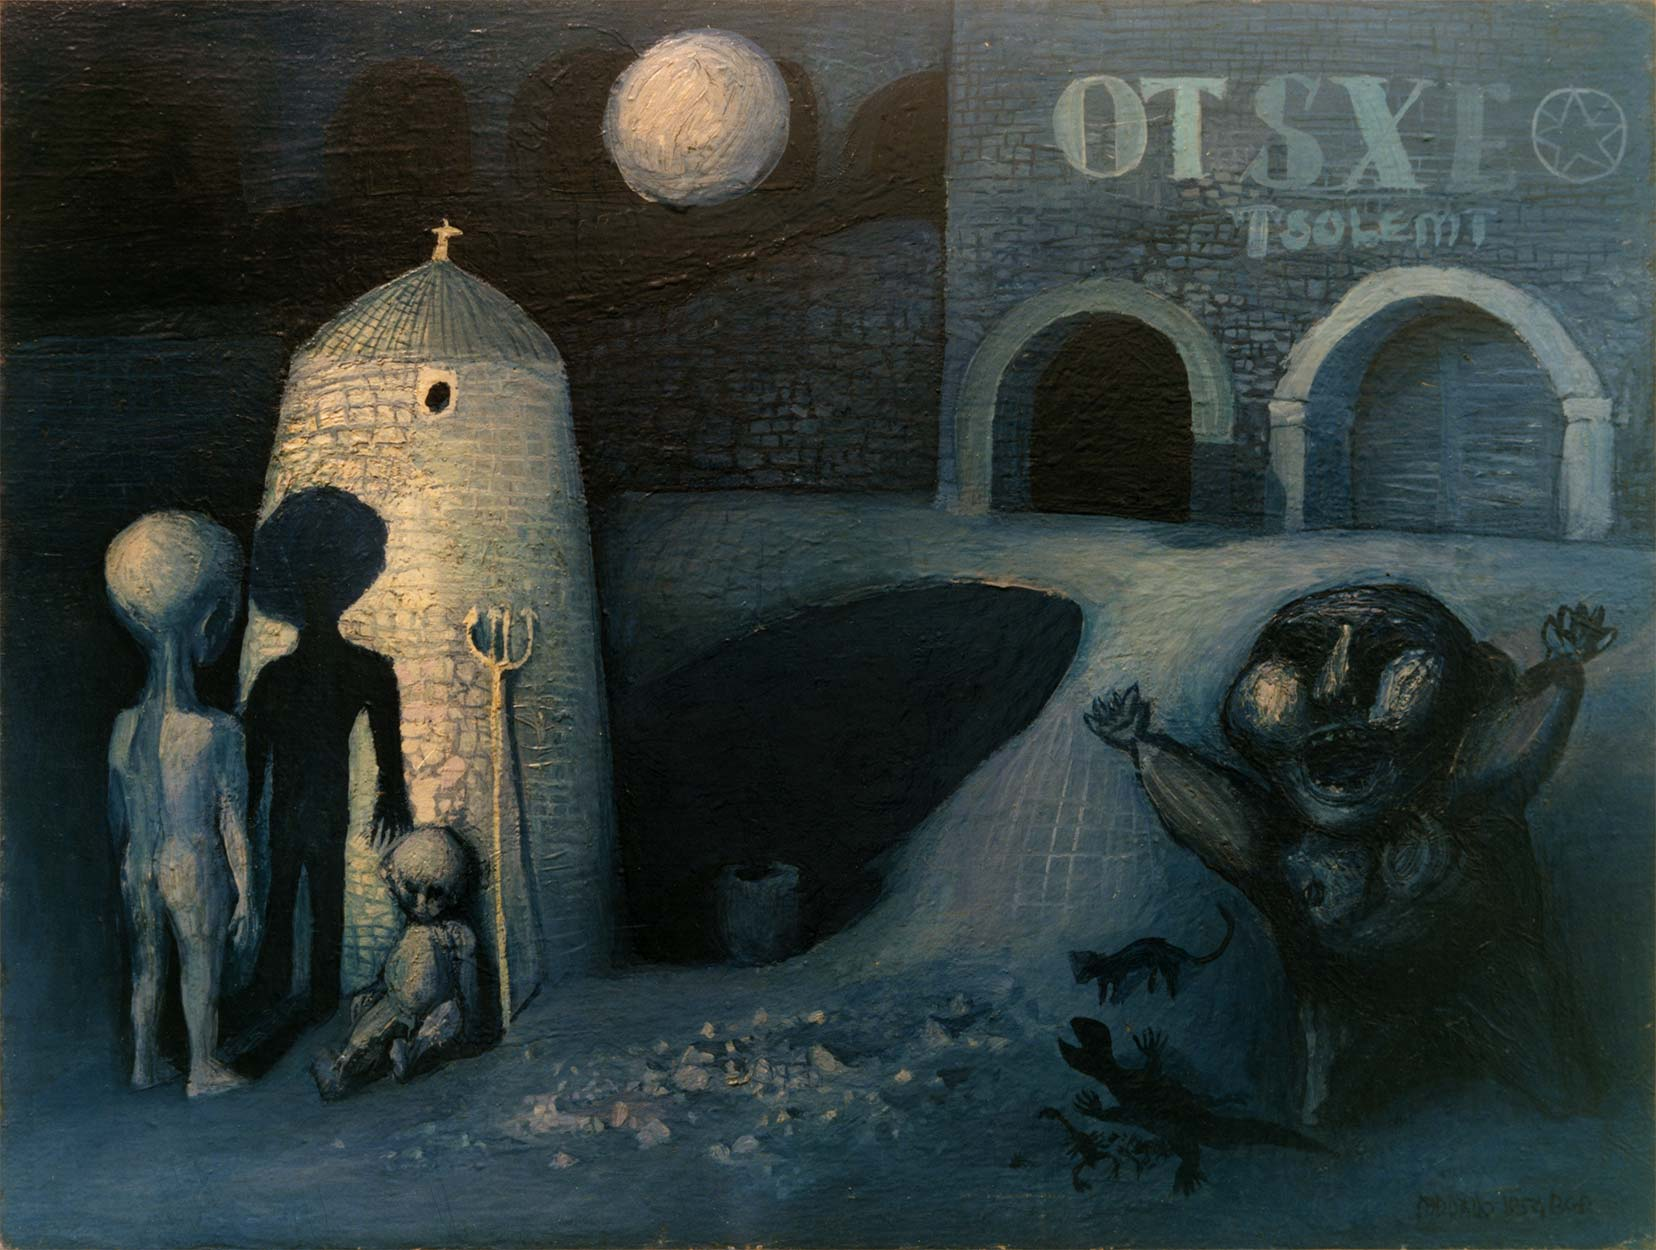 Dado: SBGD OTSXE Isolation, 1954